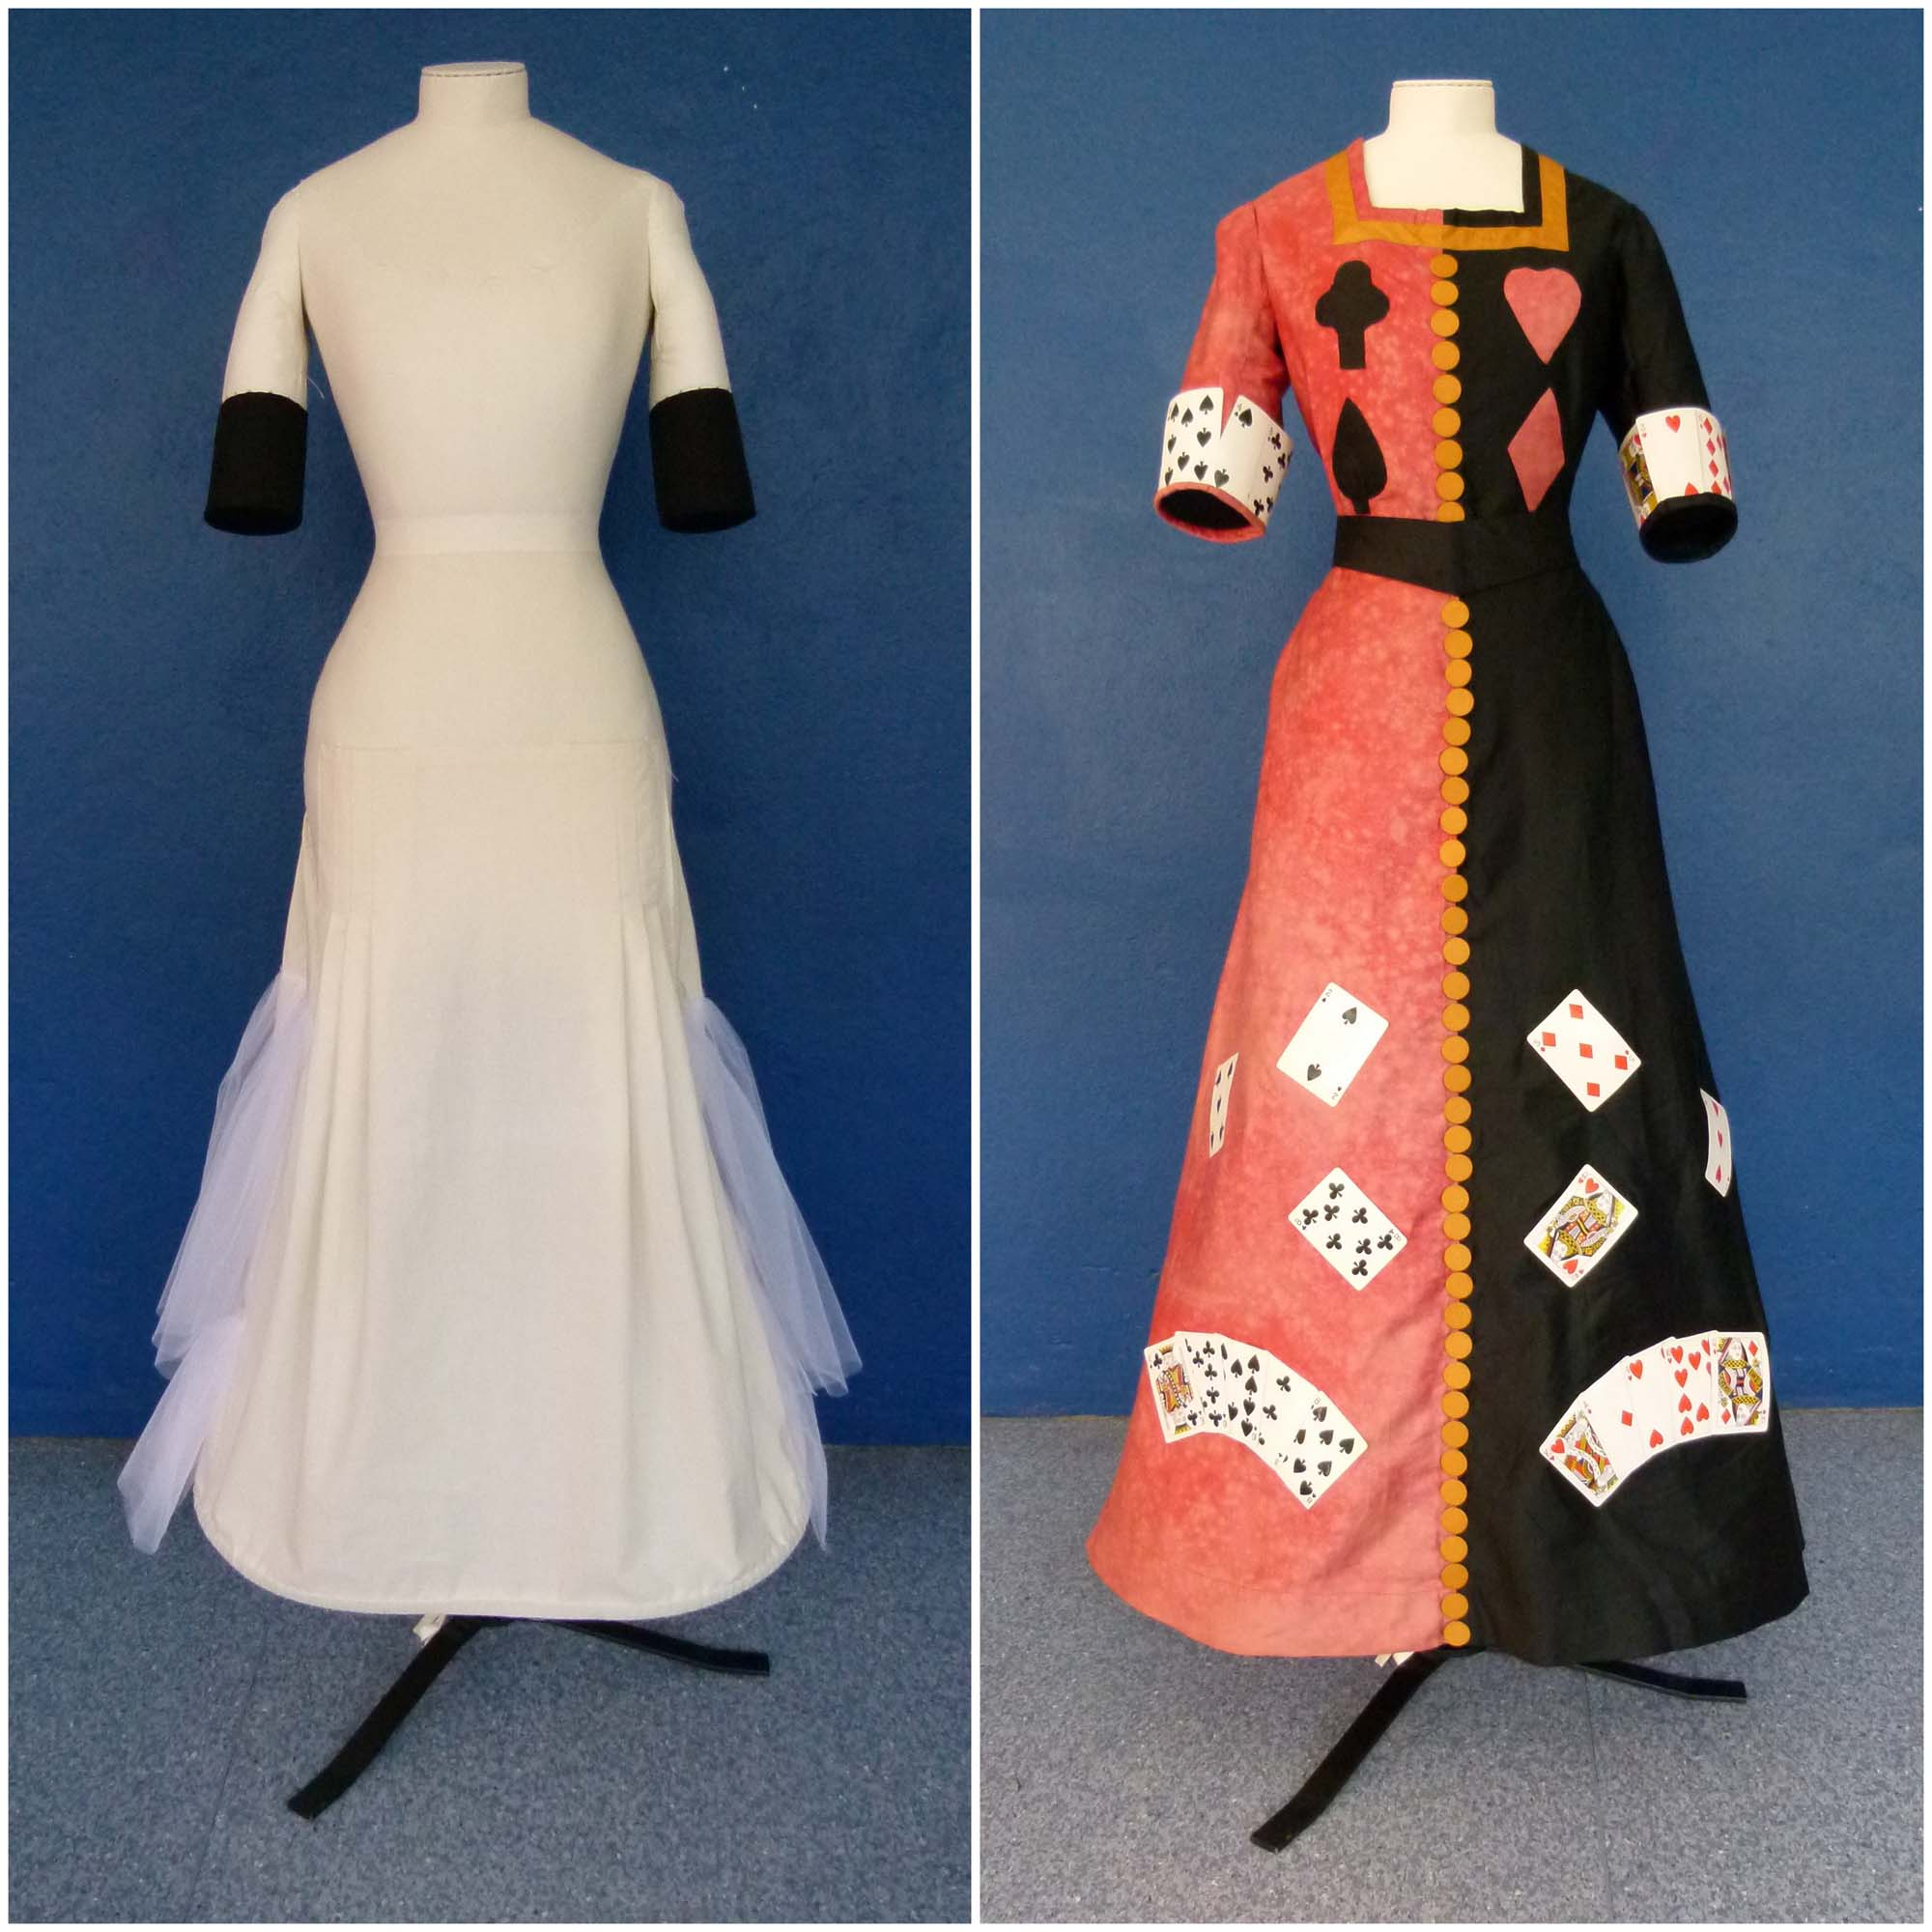 a side by side photo of a mannequin and costume